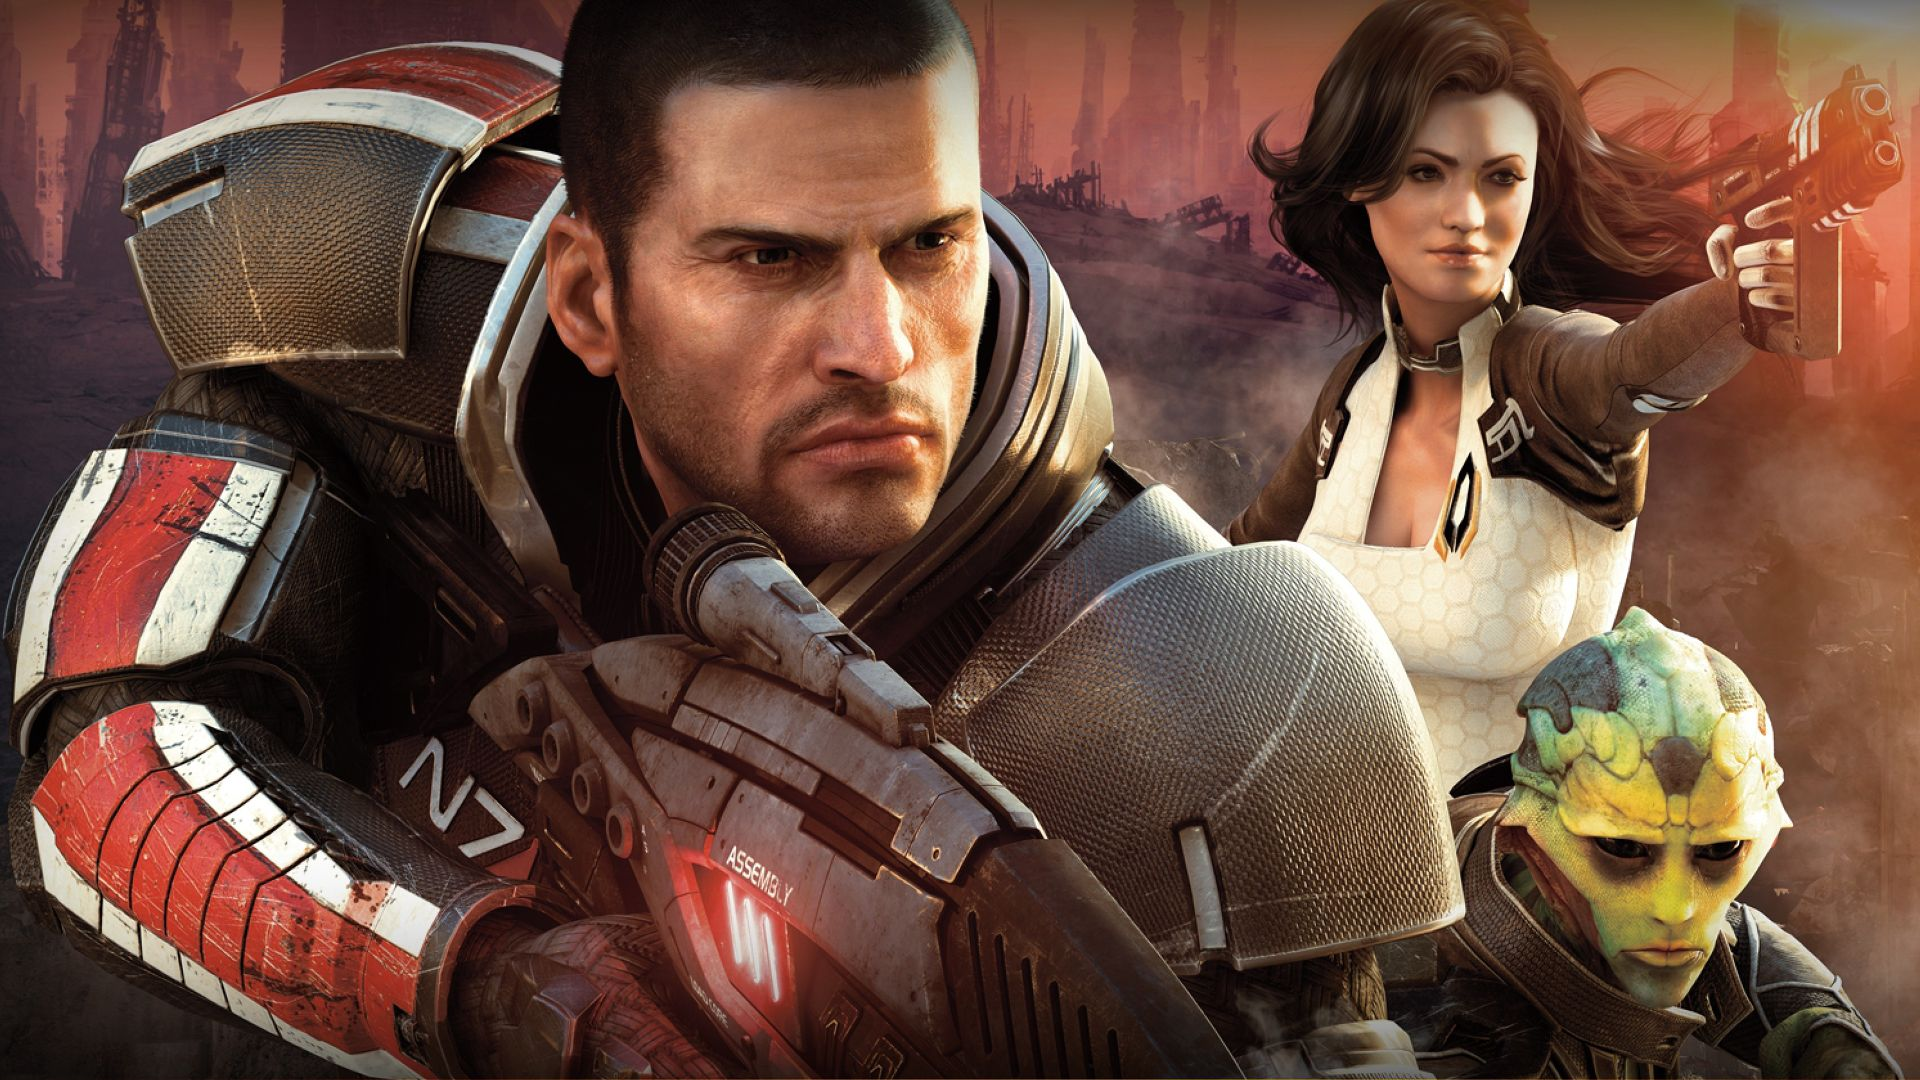 Mass Effect 2 Free for a limited time